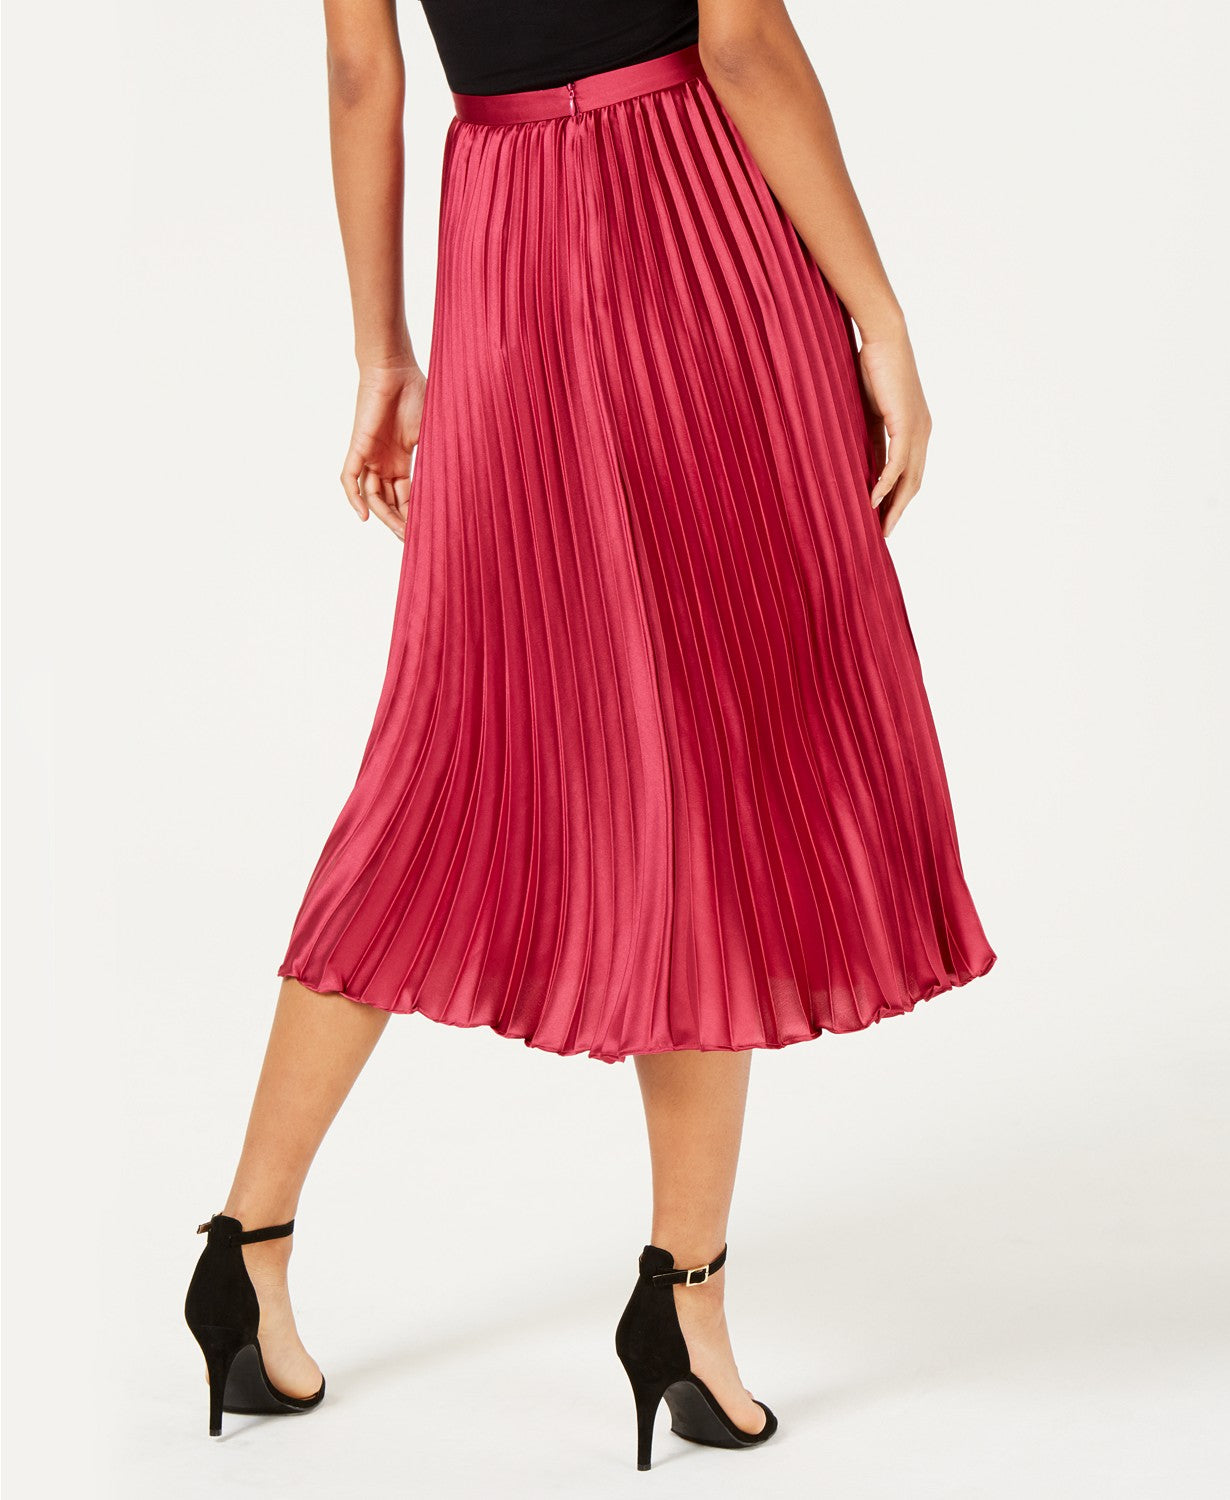 Lucy Paris Talia Pleated A-Line Skirt Magenta XL